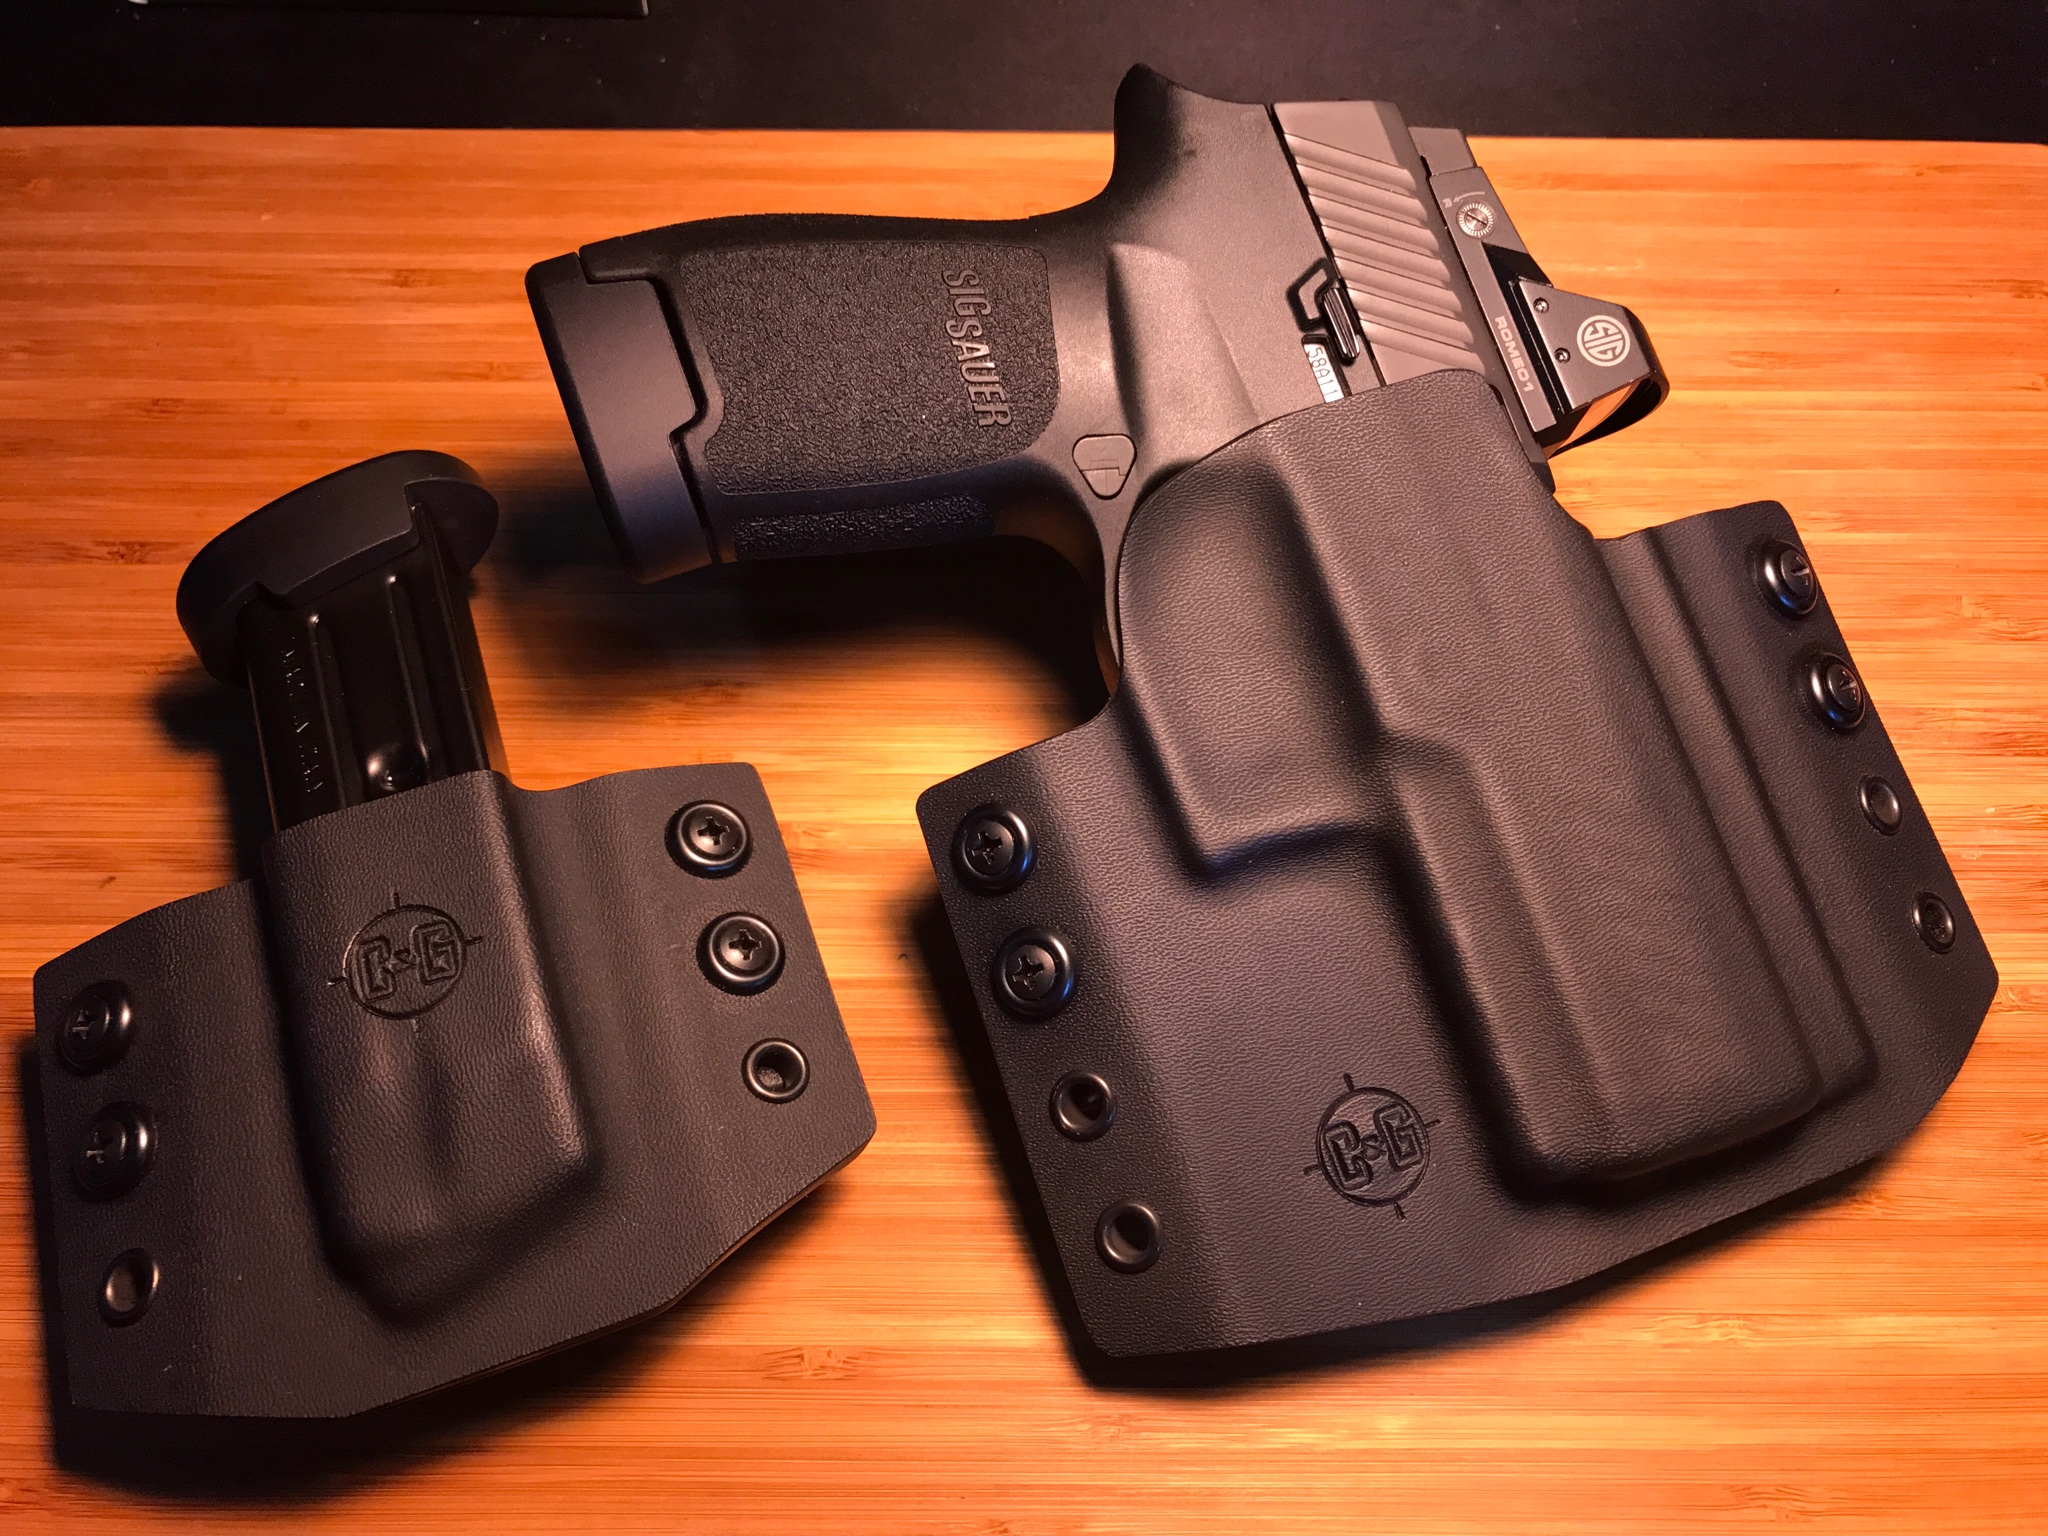 P320 rx compact holsters - SIG Talk